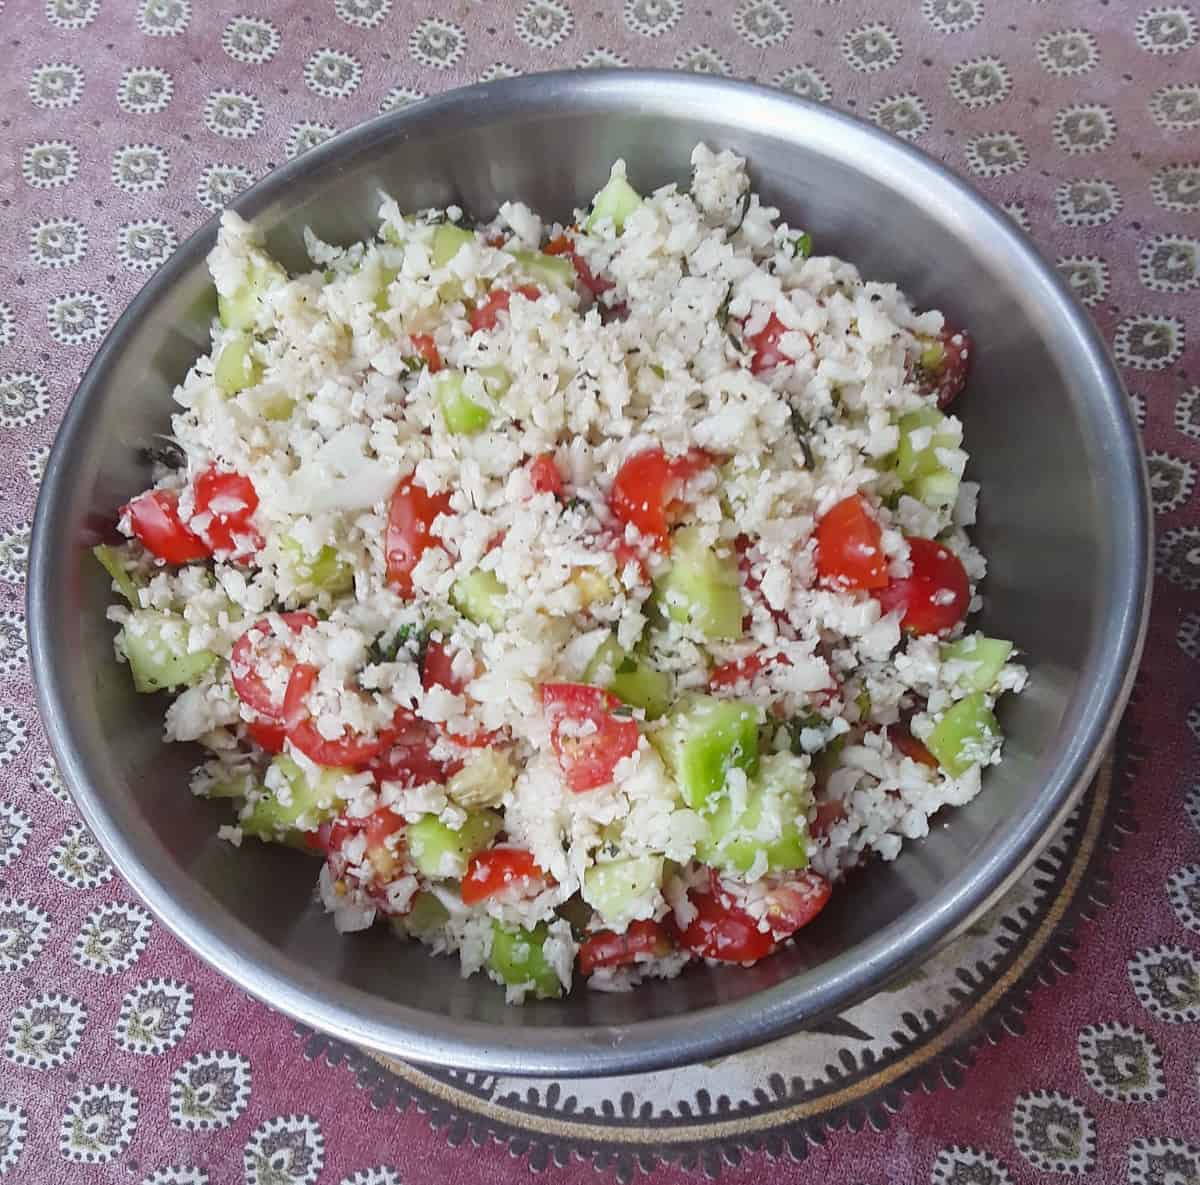 Cauliflower rice mixed with chopped cucumber and tomatoes in mixing bowl.